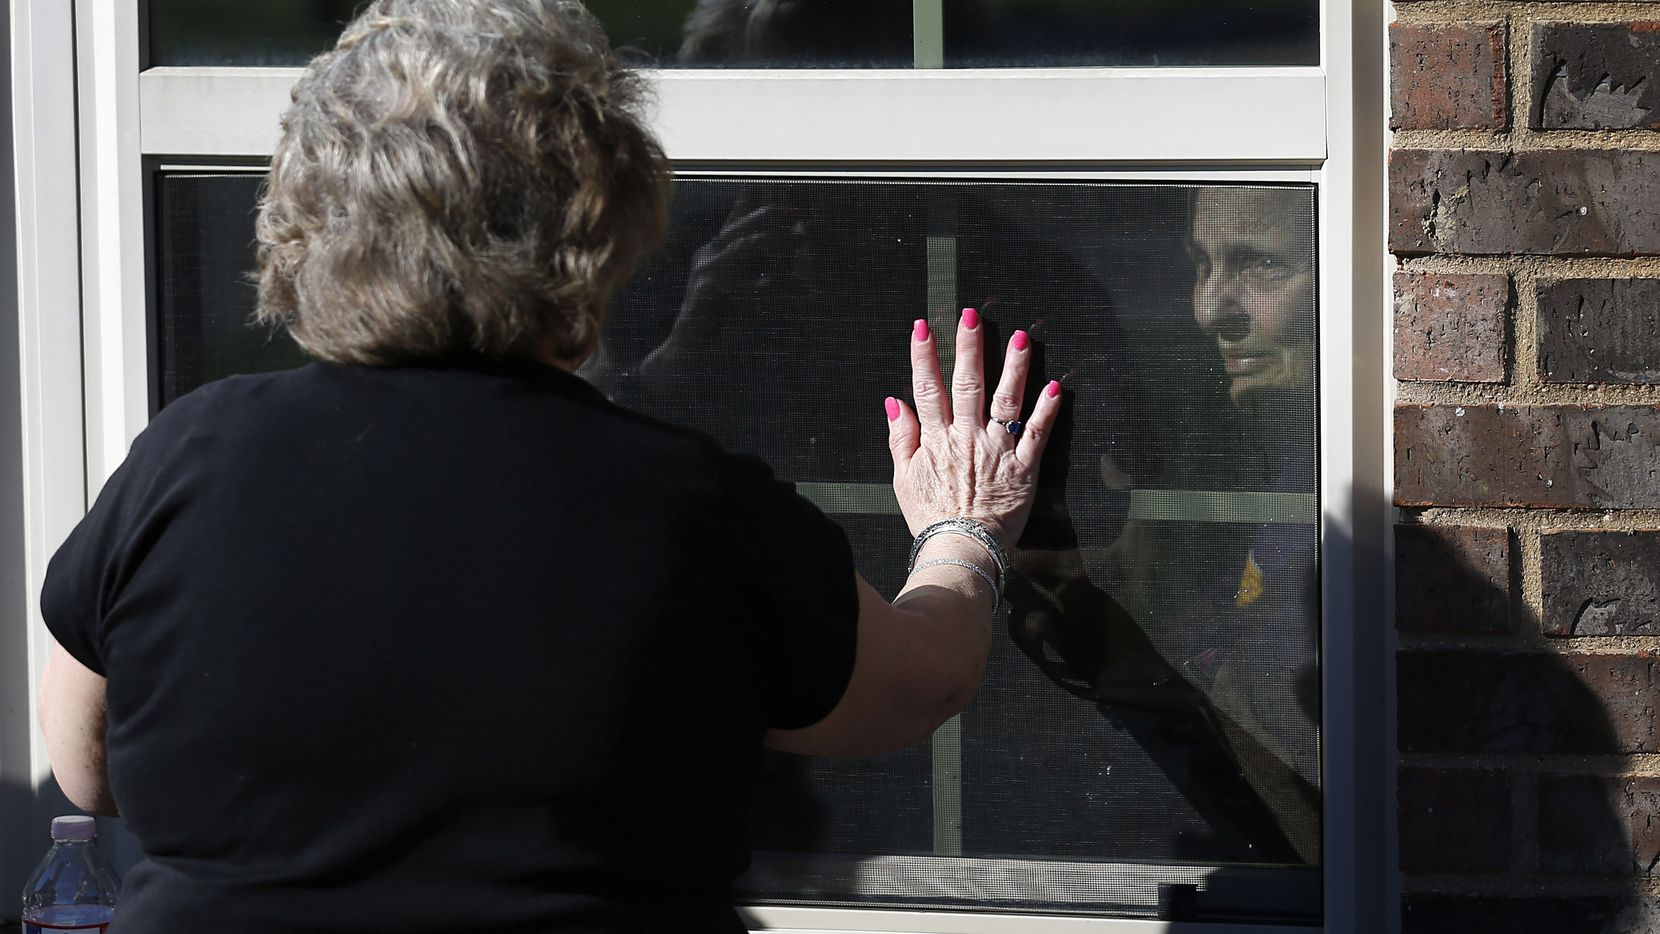 Cindy Goleman waves goodbye to her mother Peggy White from opposites sides of the window at The Pavilion at Creekwood, a healthcare and rehabilitation center in Mansfield, Texas on Tuesday, March 24, 2020. Peggy White had a stroke in late January. Cindy Goleman is one of those people with parents and/or loved ones in nursing homes, hospitals or skilled healthcare facilities who can't visit in person. Goleman visits by looking through the window as she talks to her on the phone.